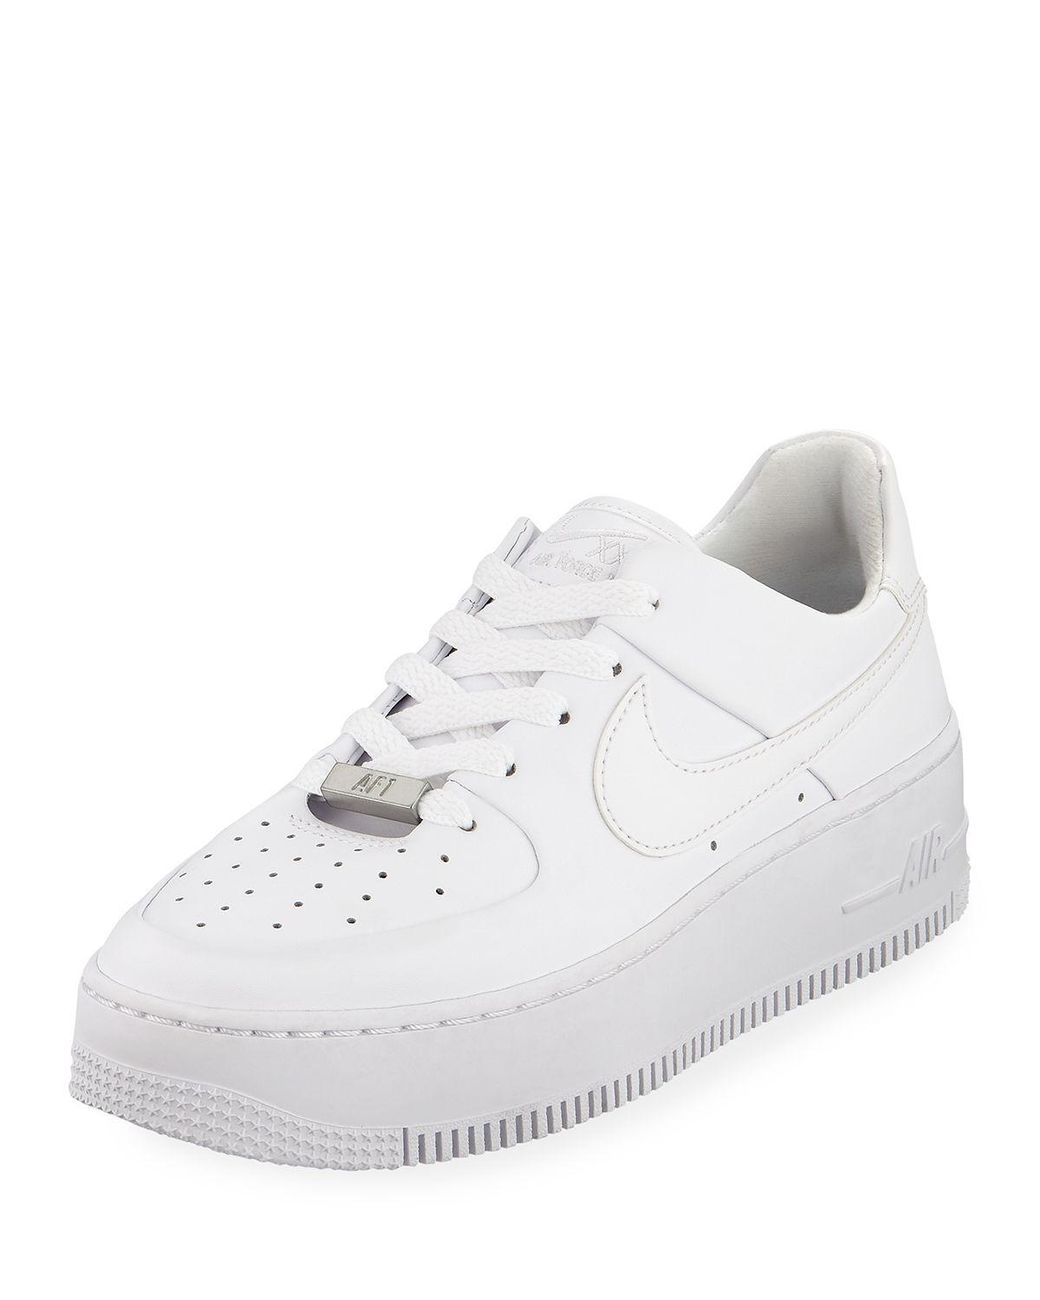 Women's White Air Force 1 Sage Low top Sneakers